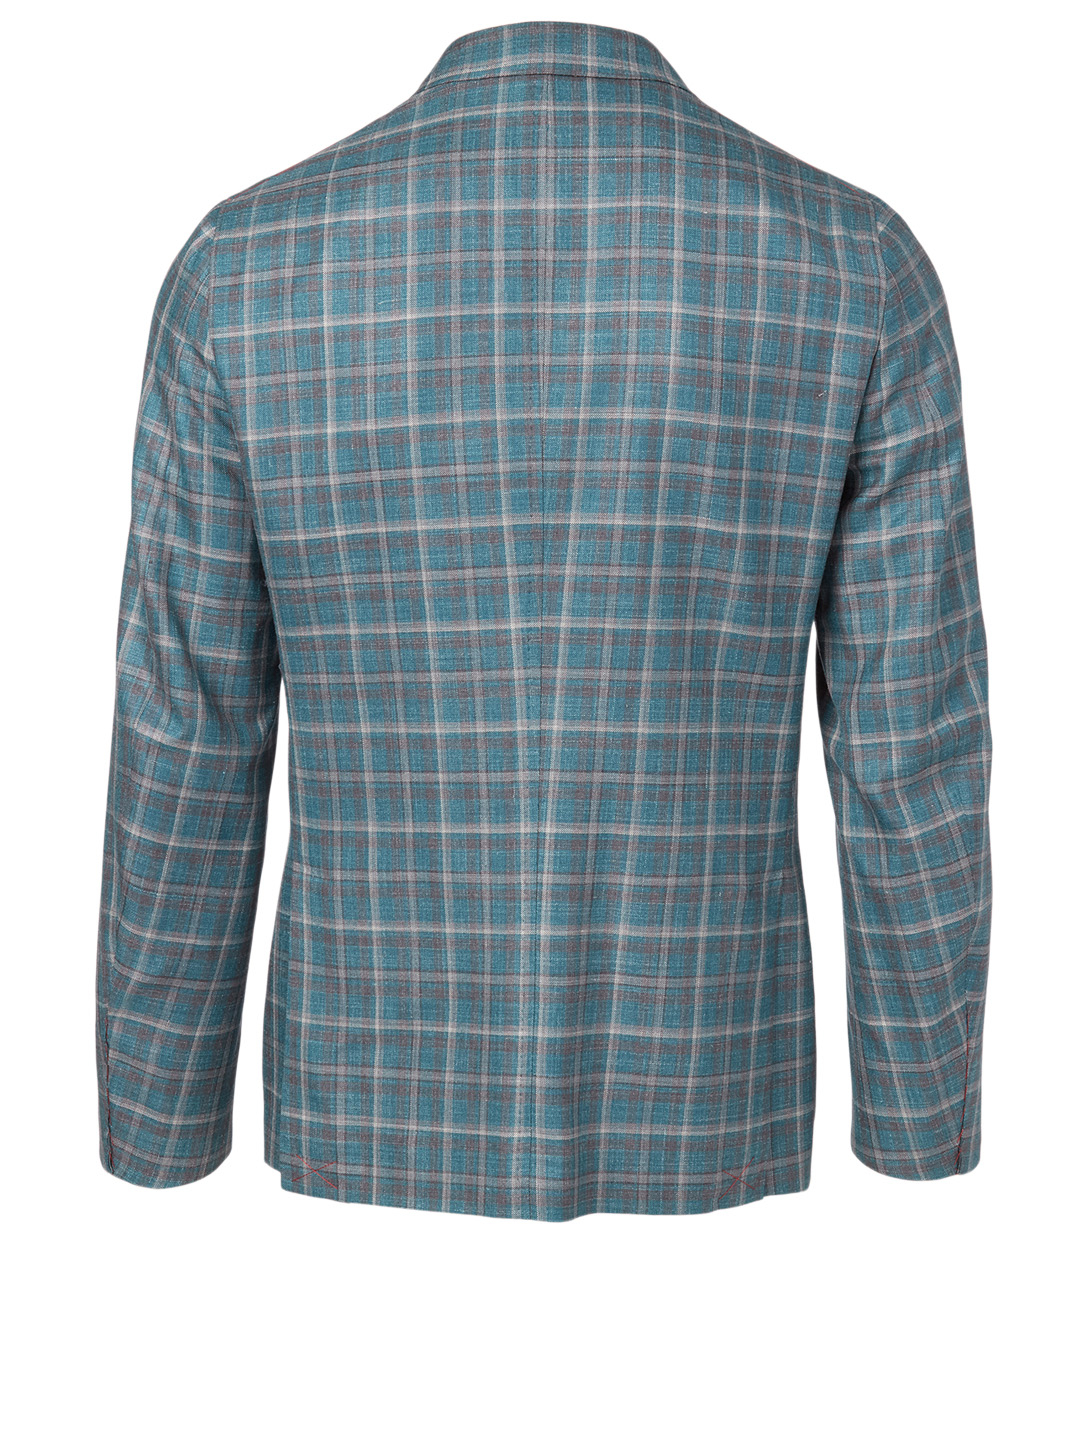 ISAIA Wool And Silk Jacket In Plaid Print Men's Blue